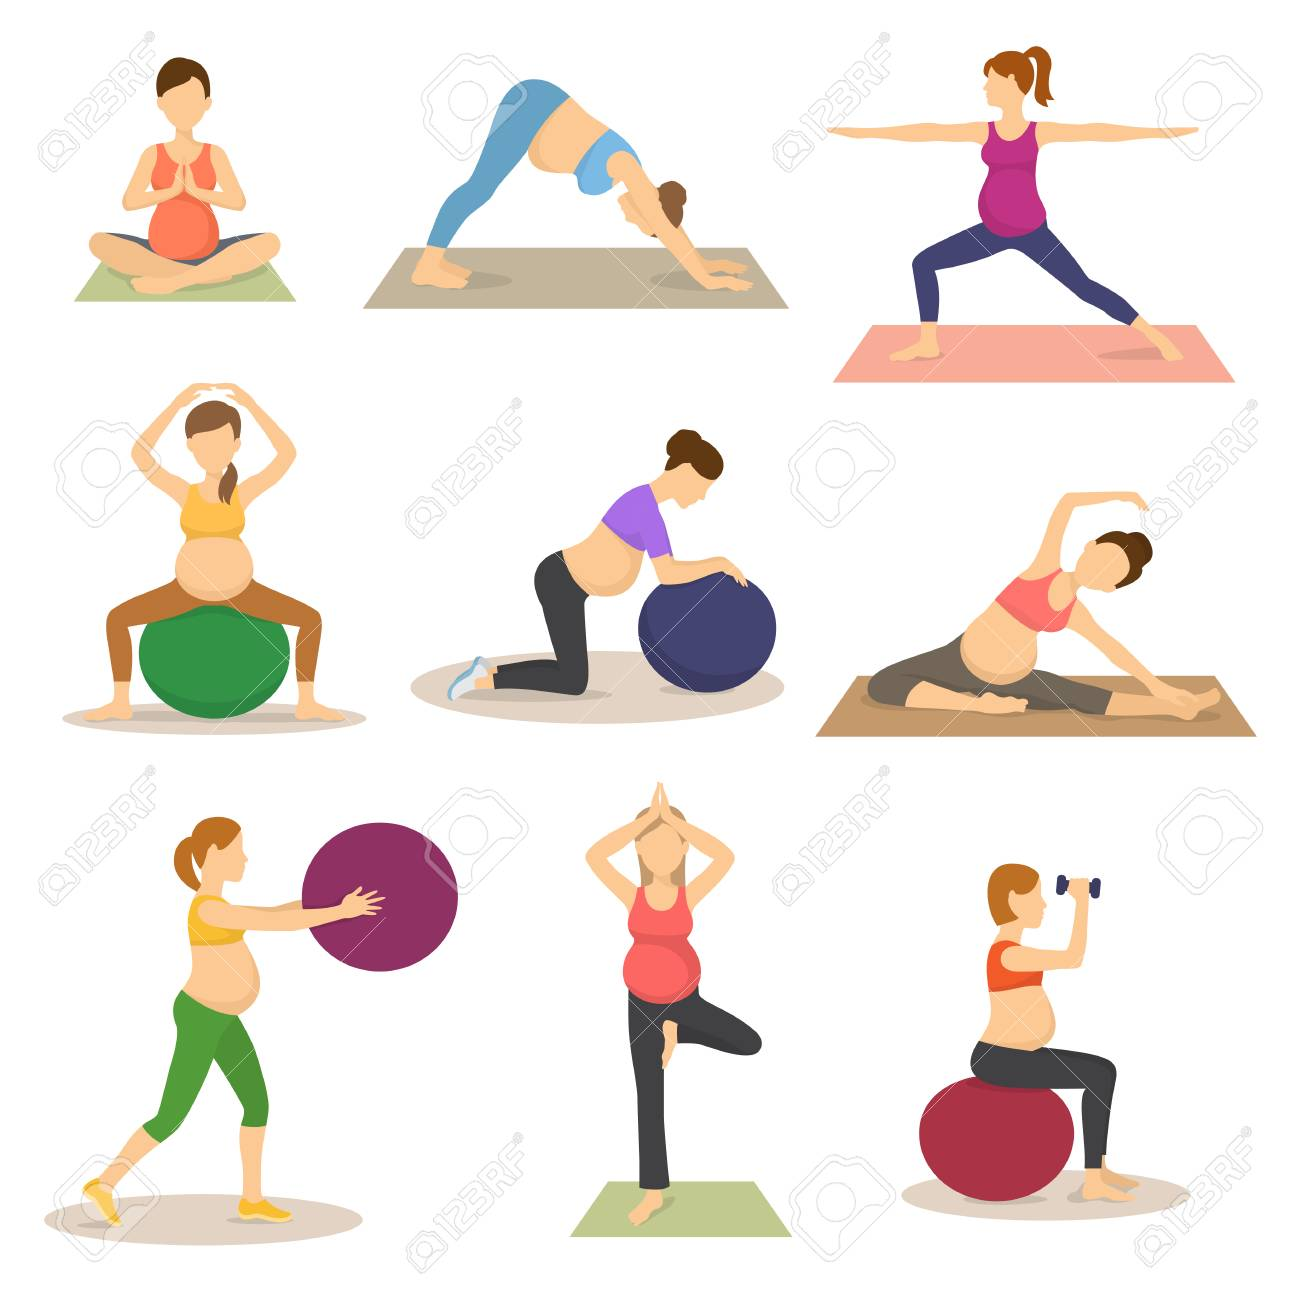 Fitness routine for pregnant woman vector illustration - 97445307